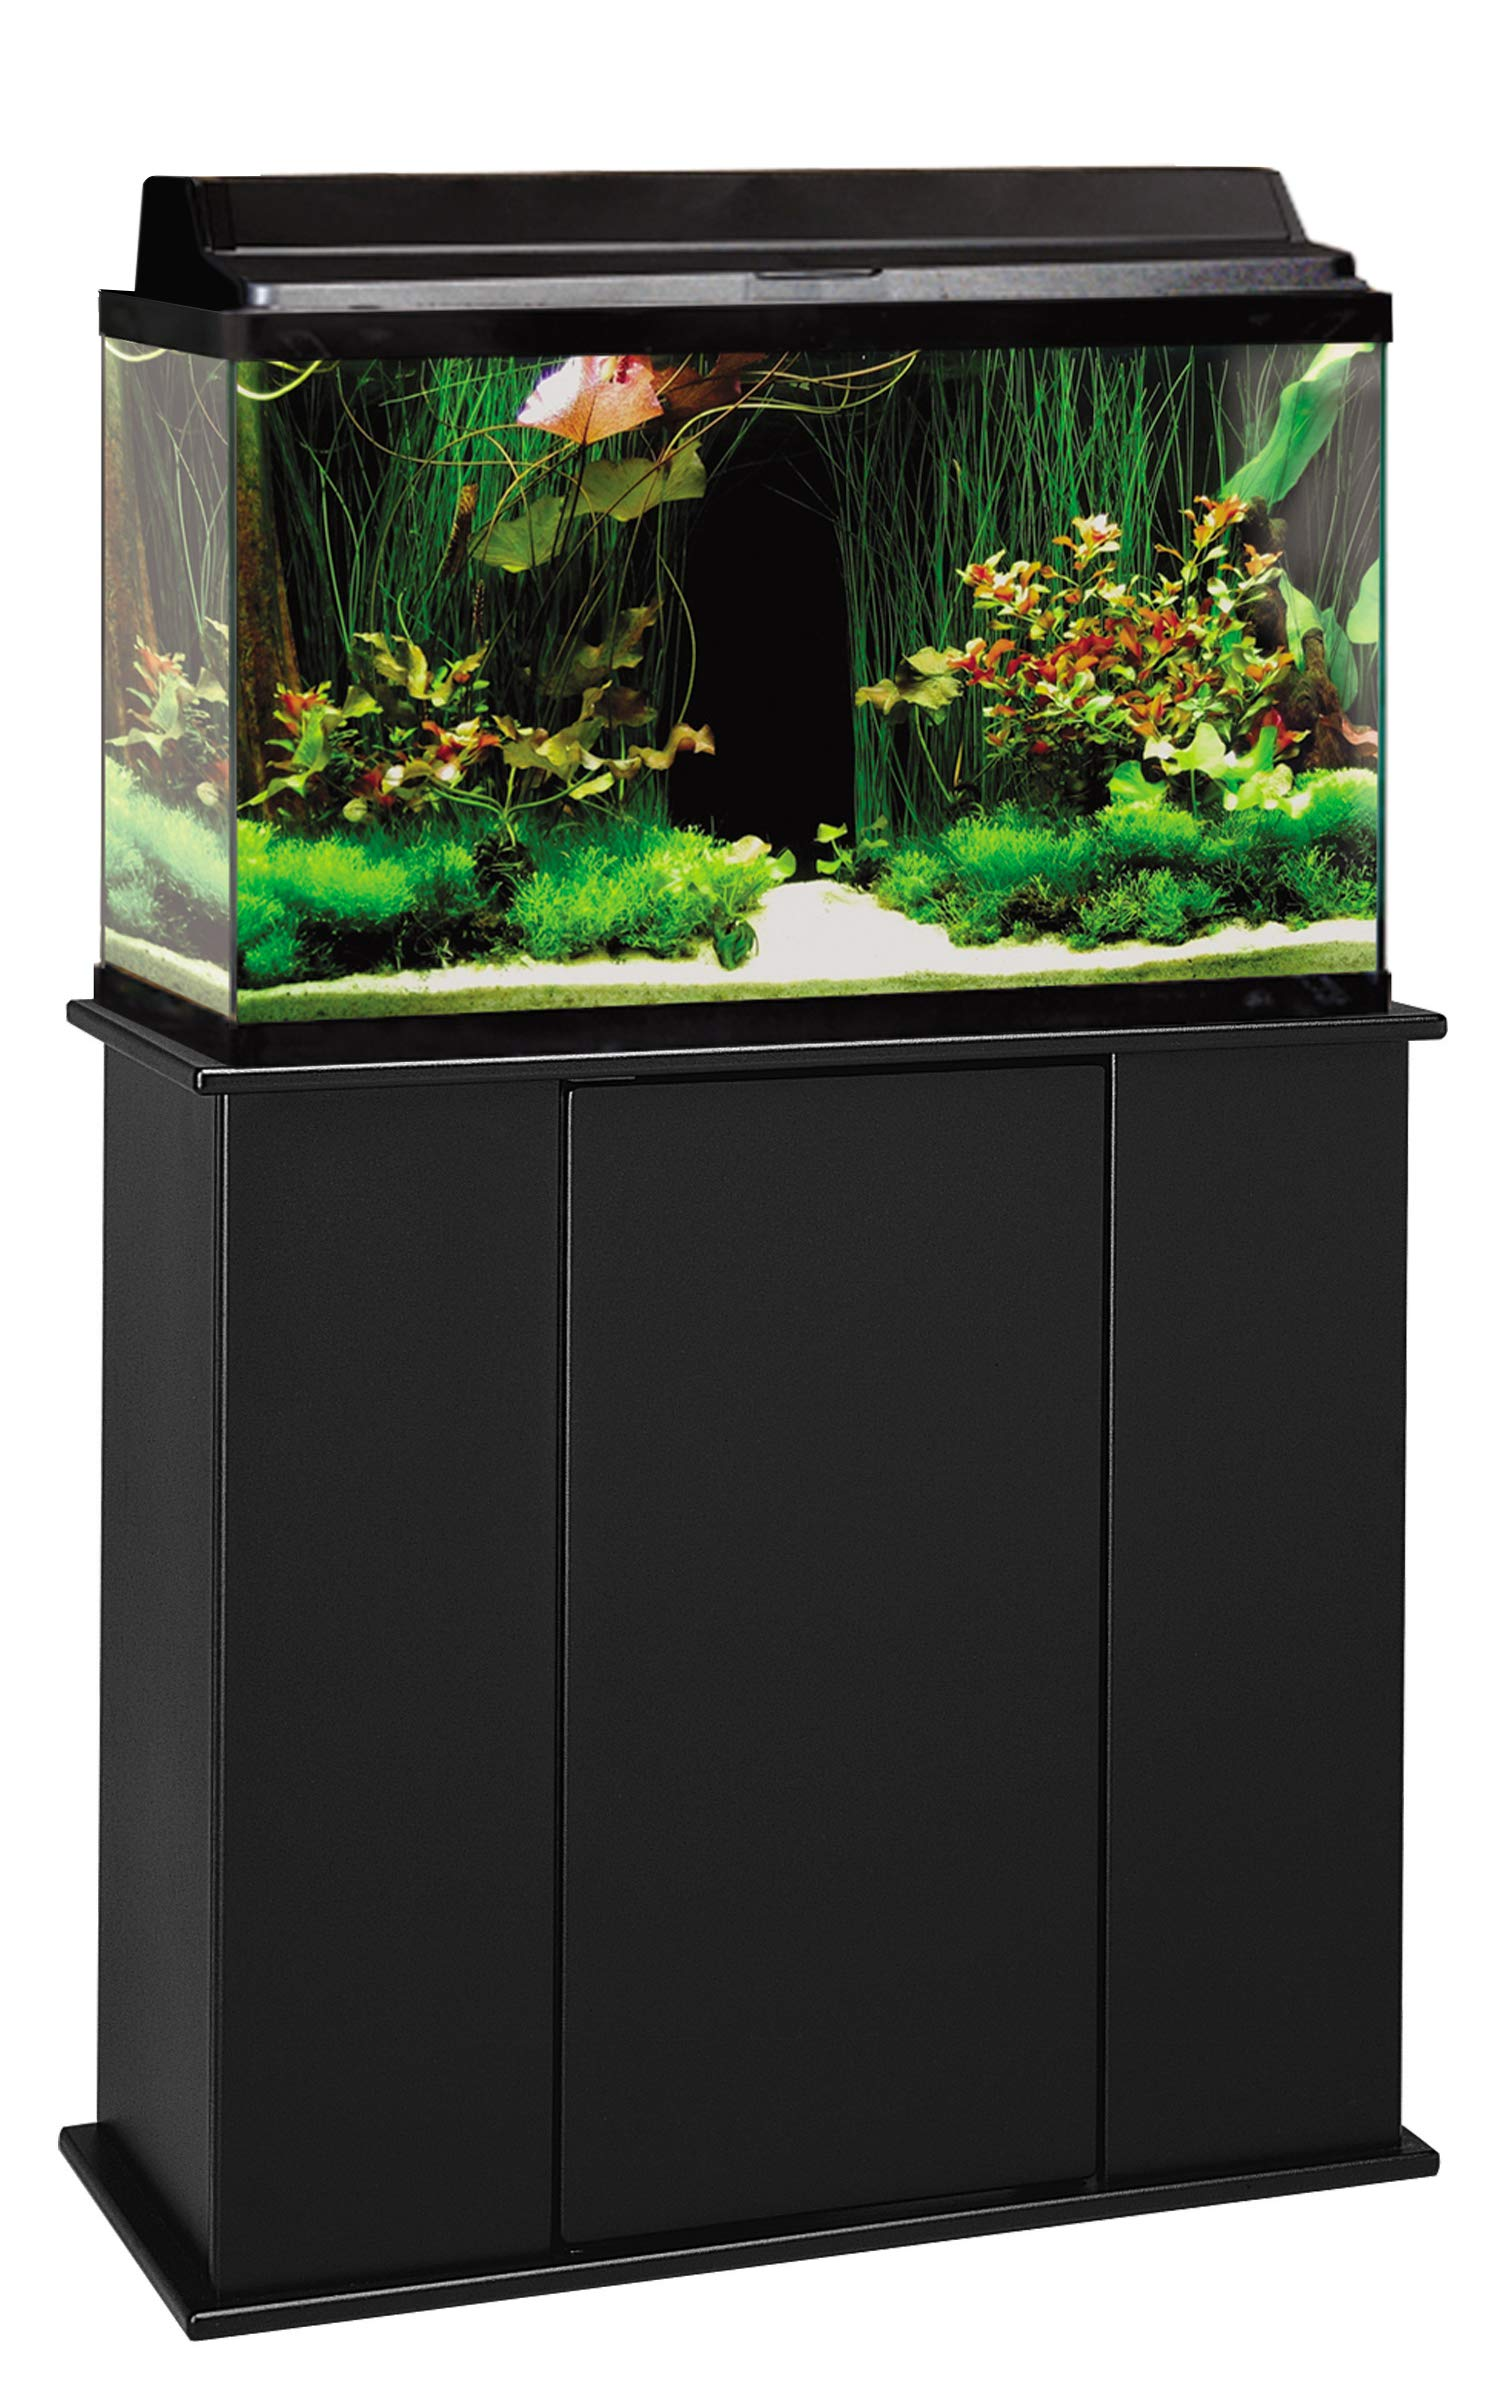 Aquatic Fundamentals AMZ-36291-01, 29 Gallon Aquarium Stand with Storage, Black Finish by Aquatic Fundamentals